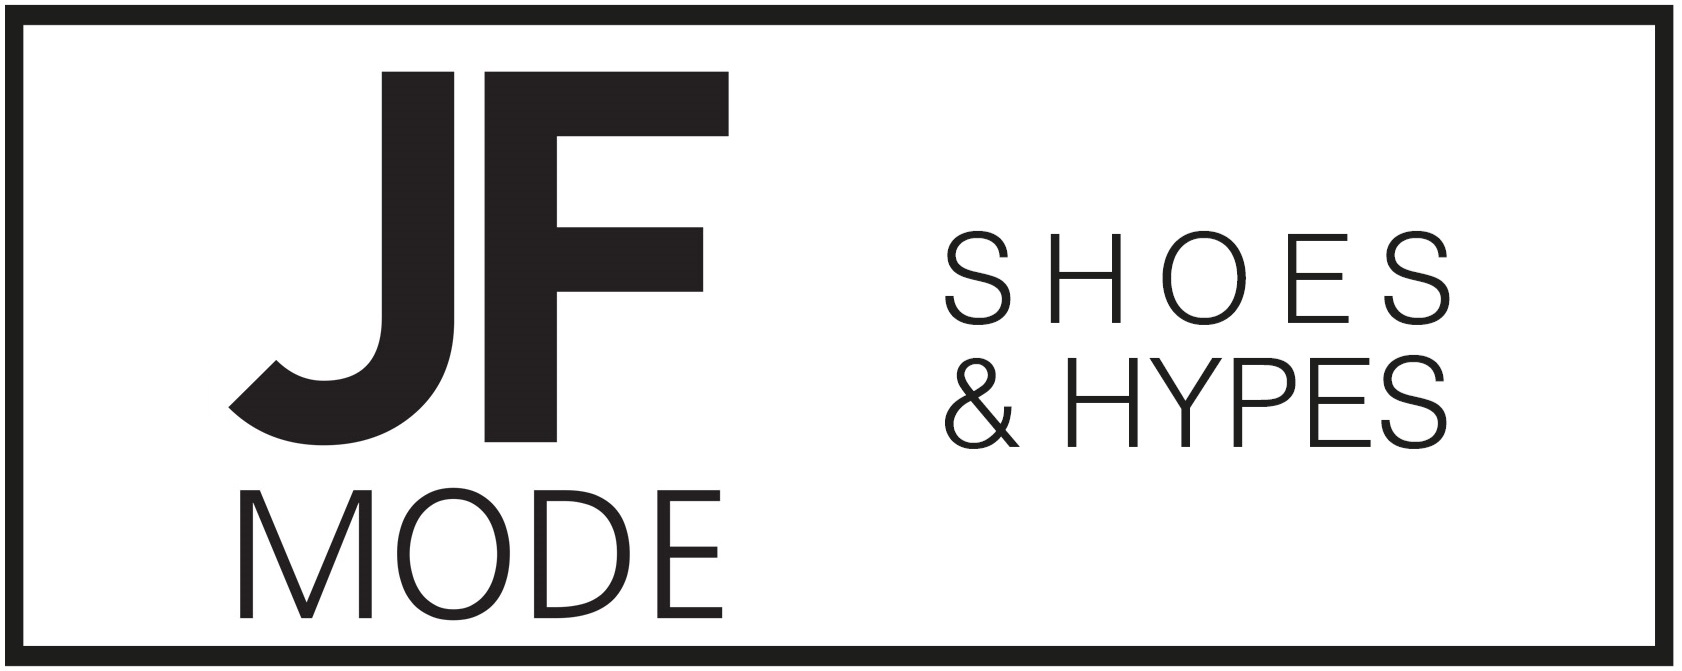 JF MODE | Shoes & Hypes logo